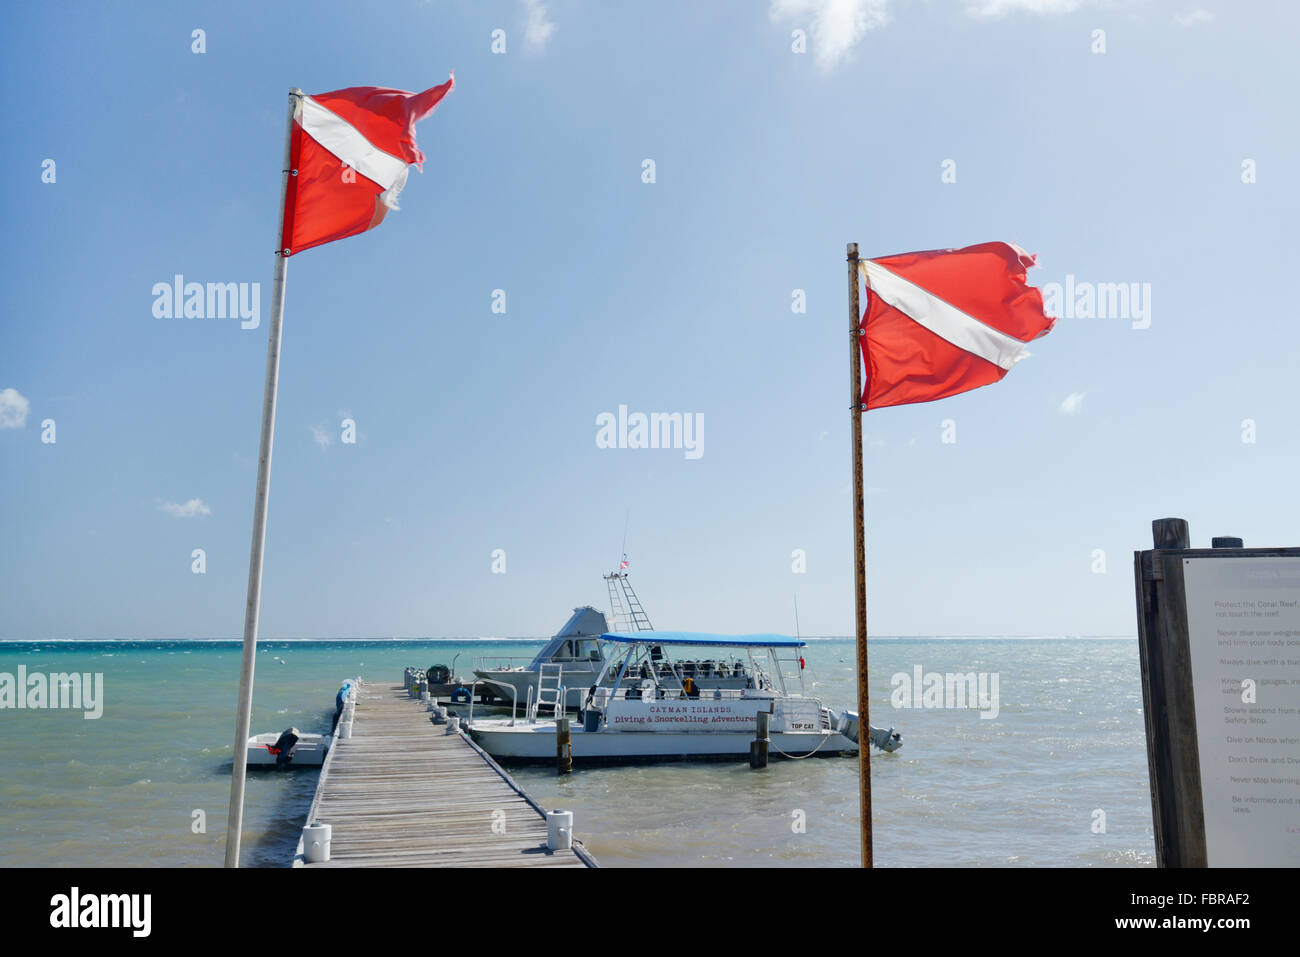 Dive boats docked, Ocean frontiers, East End, Grand Cayman - Stock Image